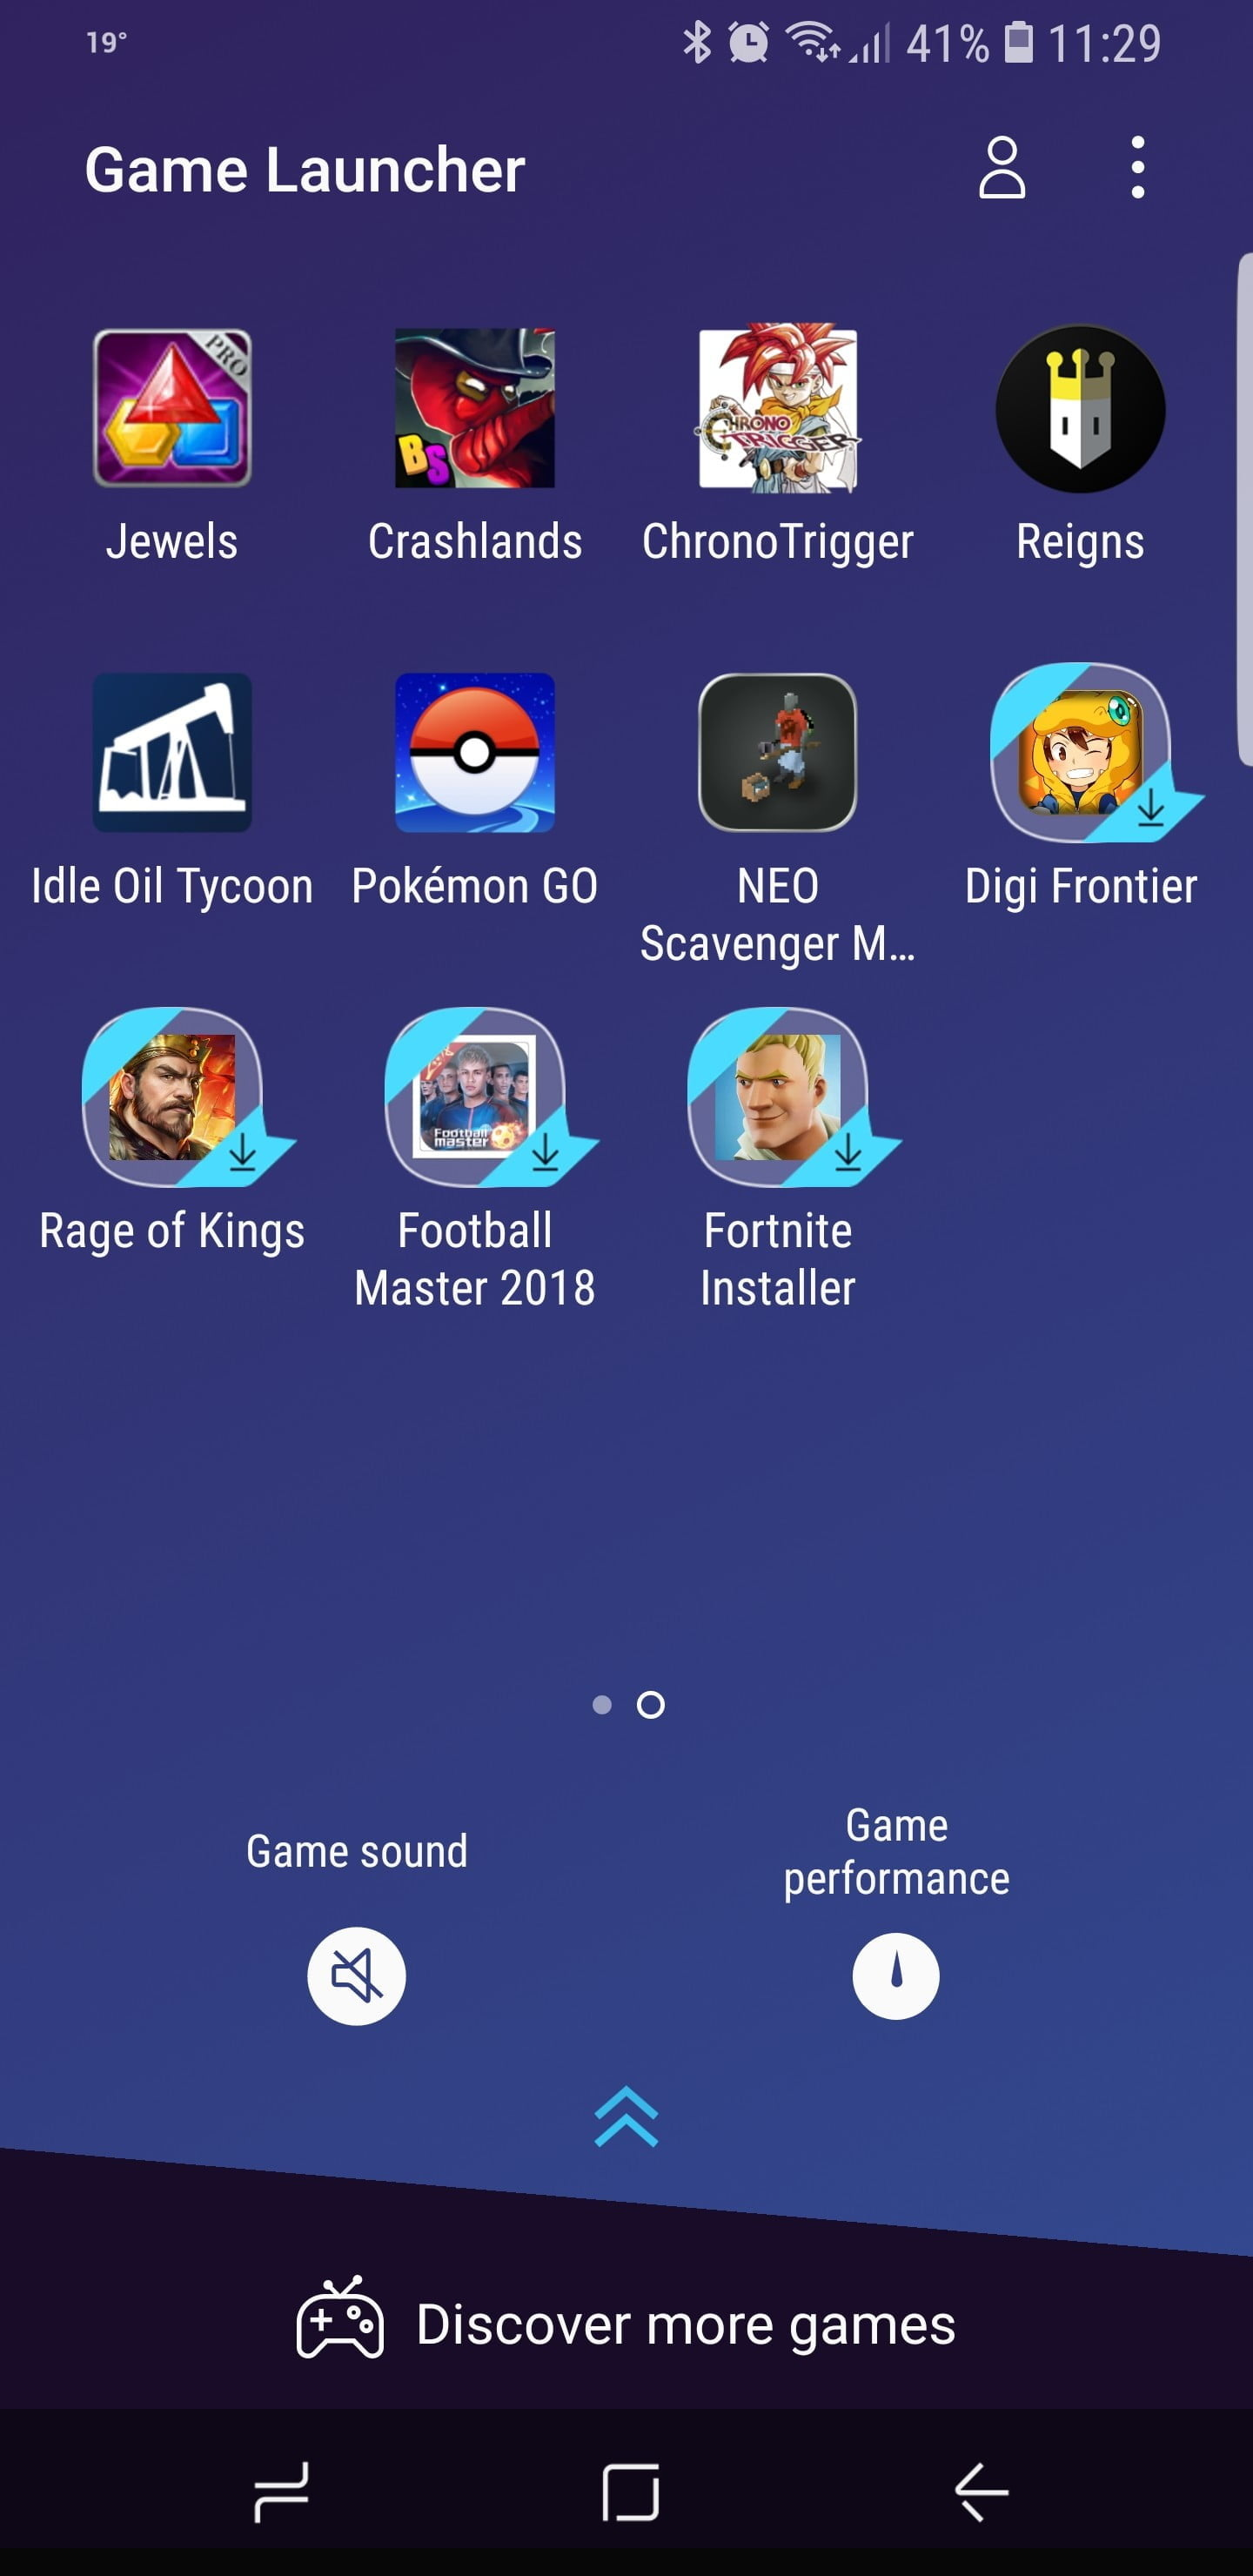 How To Download Fortnite Battle Royale On Android How To Download Fortnite Battle Royale On Android Devices